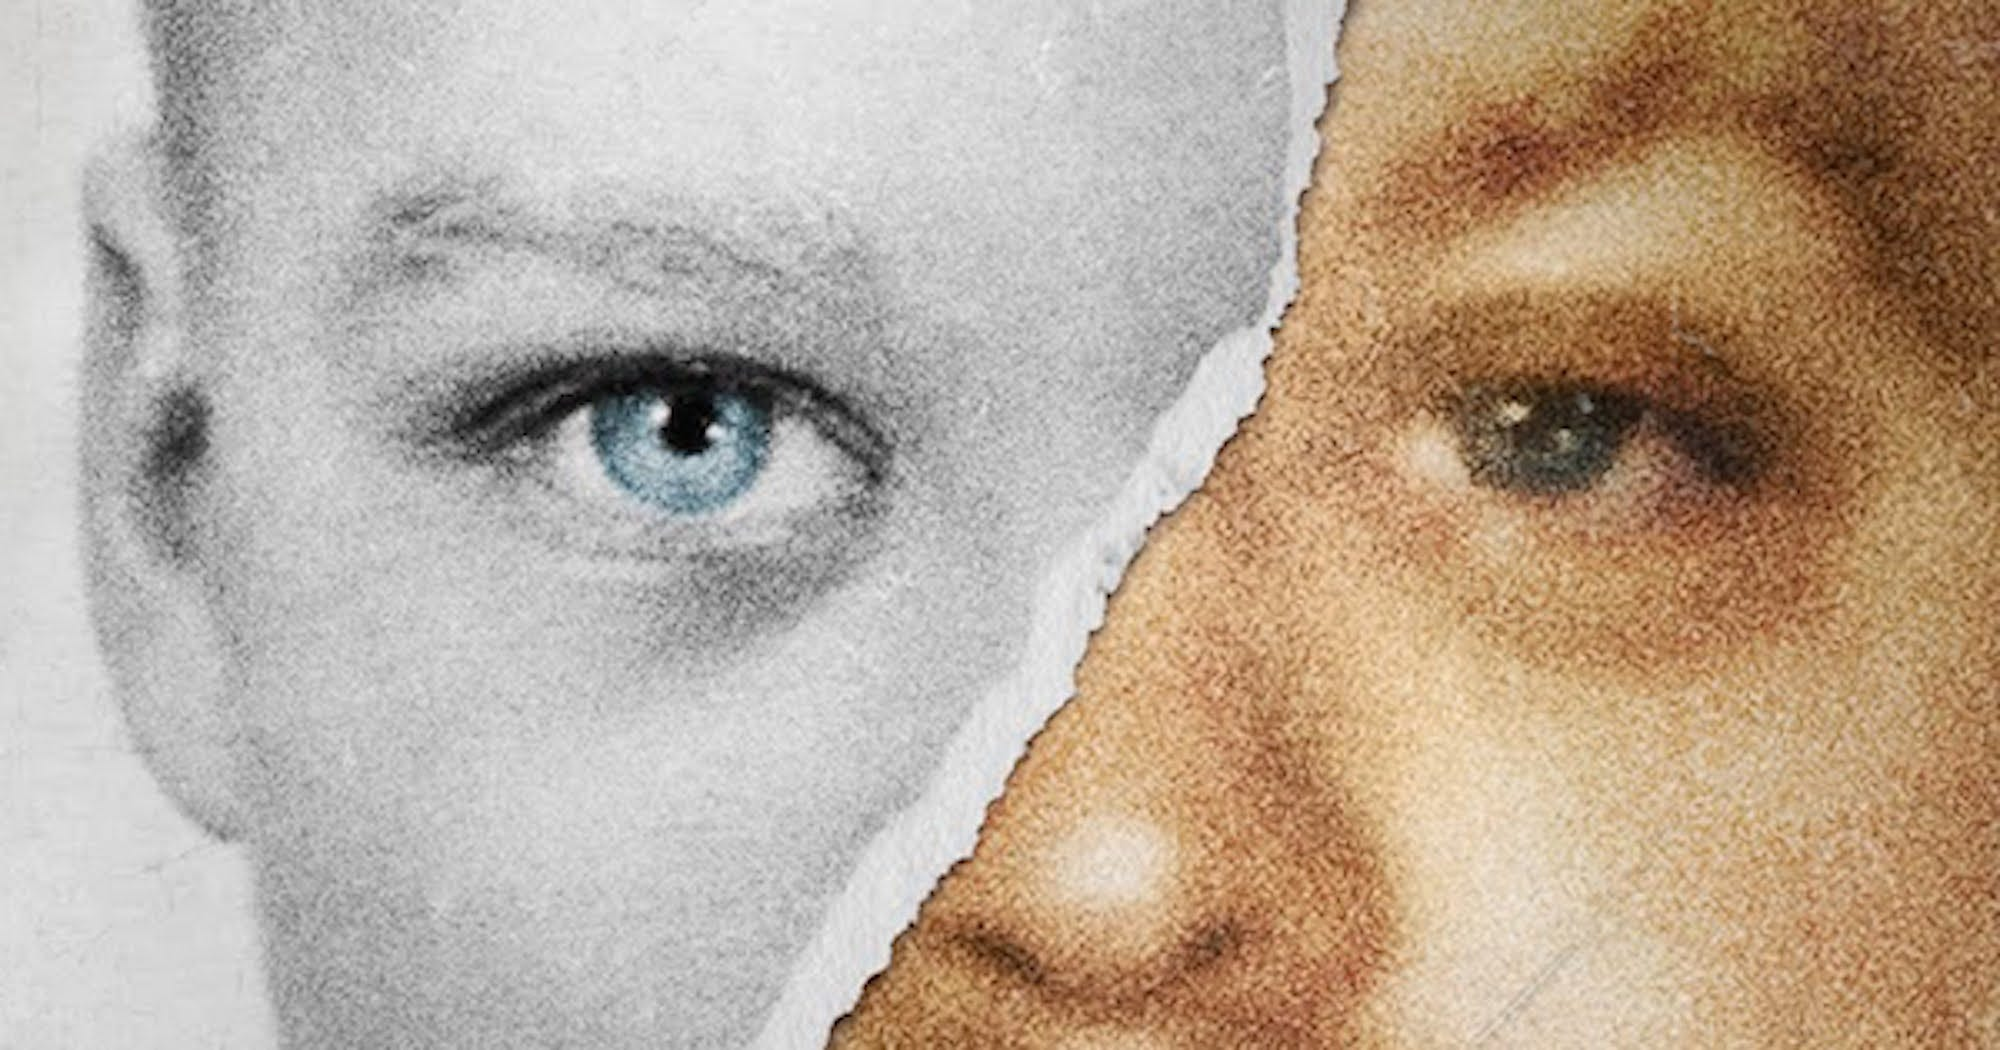 The Making A Murderer Theory You Haven't Heard Yet